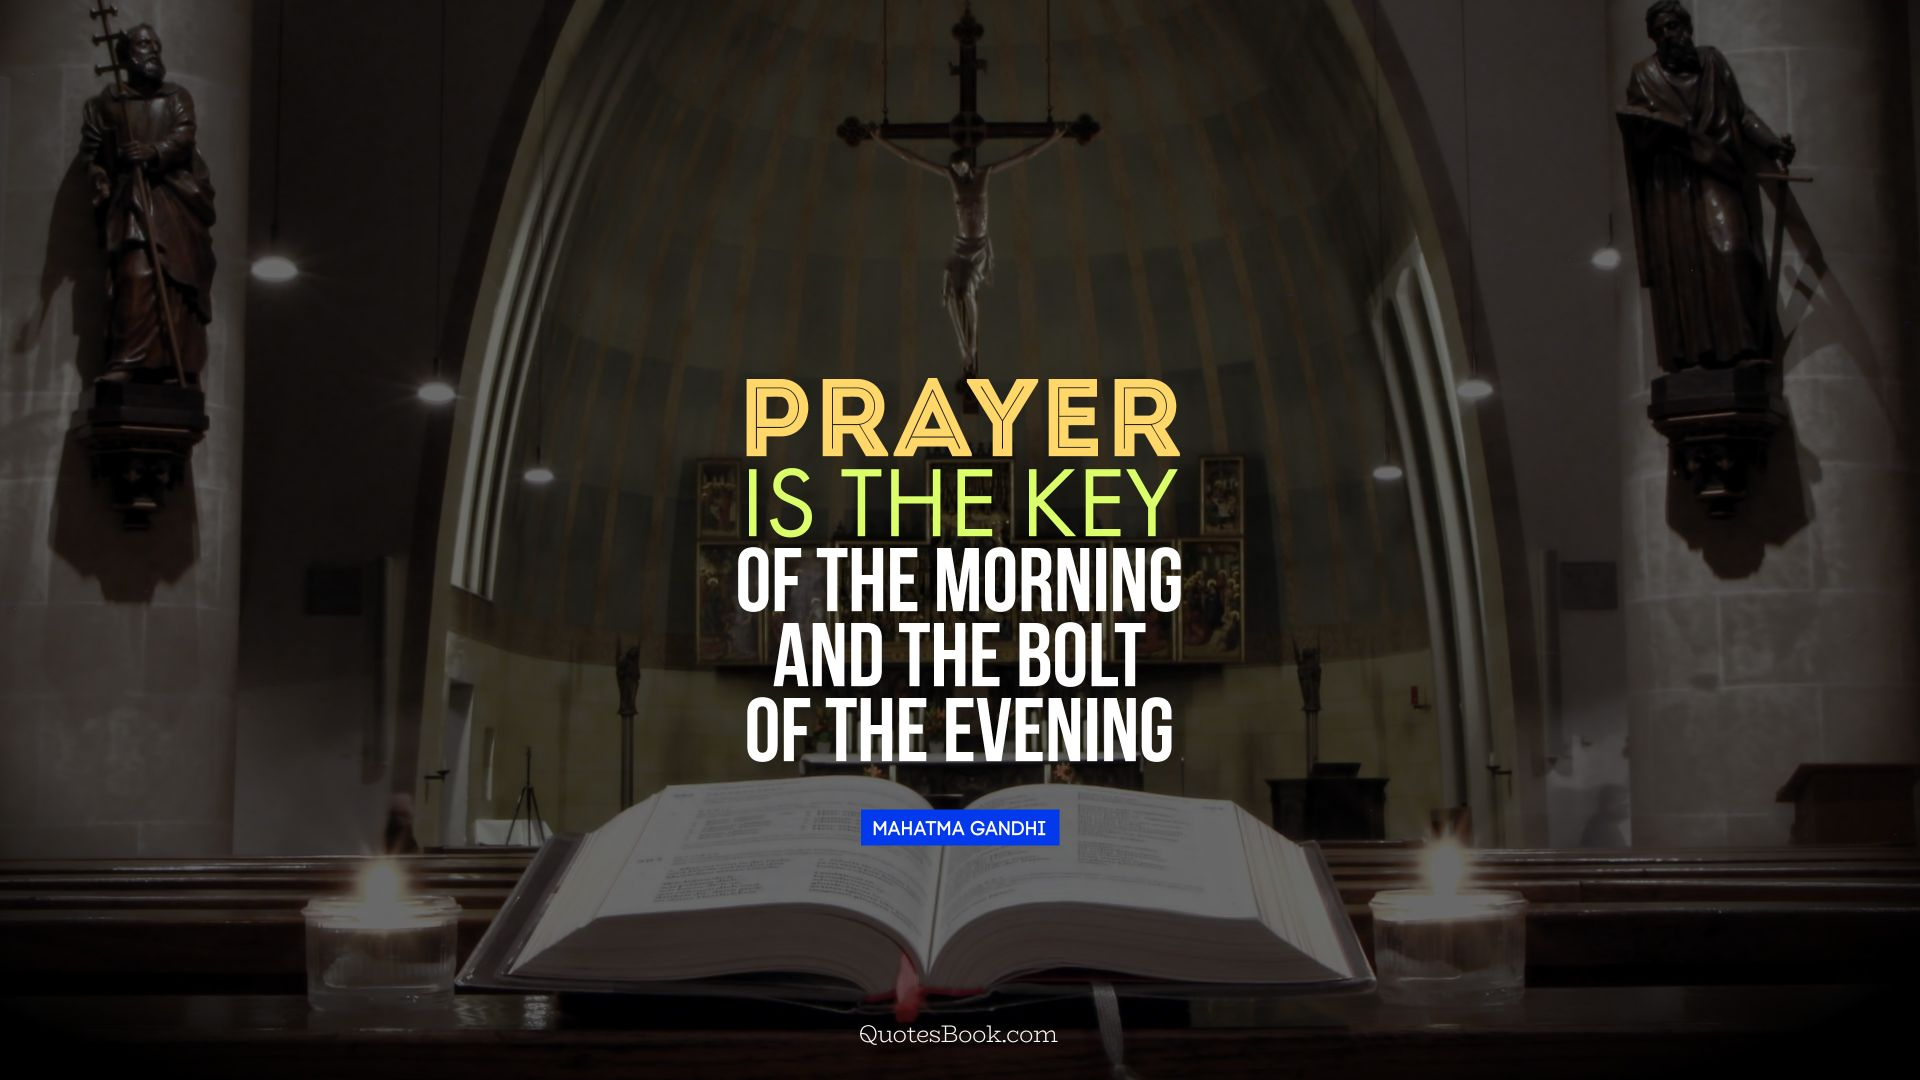 Prayer is the key of the morning and the bolt of the evening. - Quote by Mahatma Gandhi